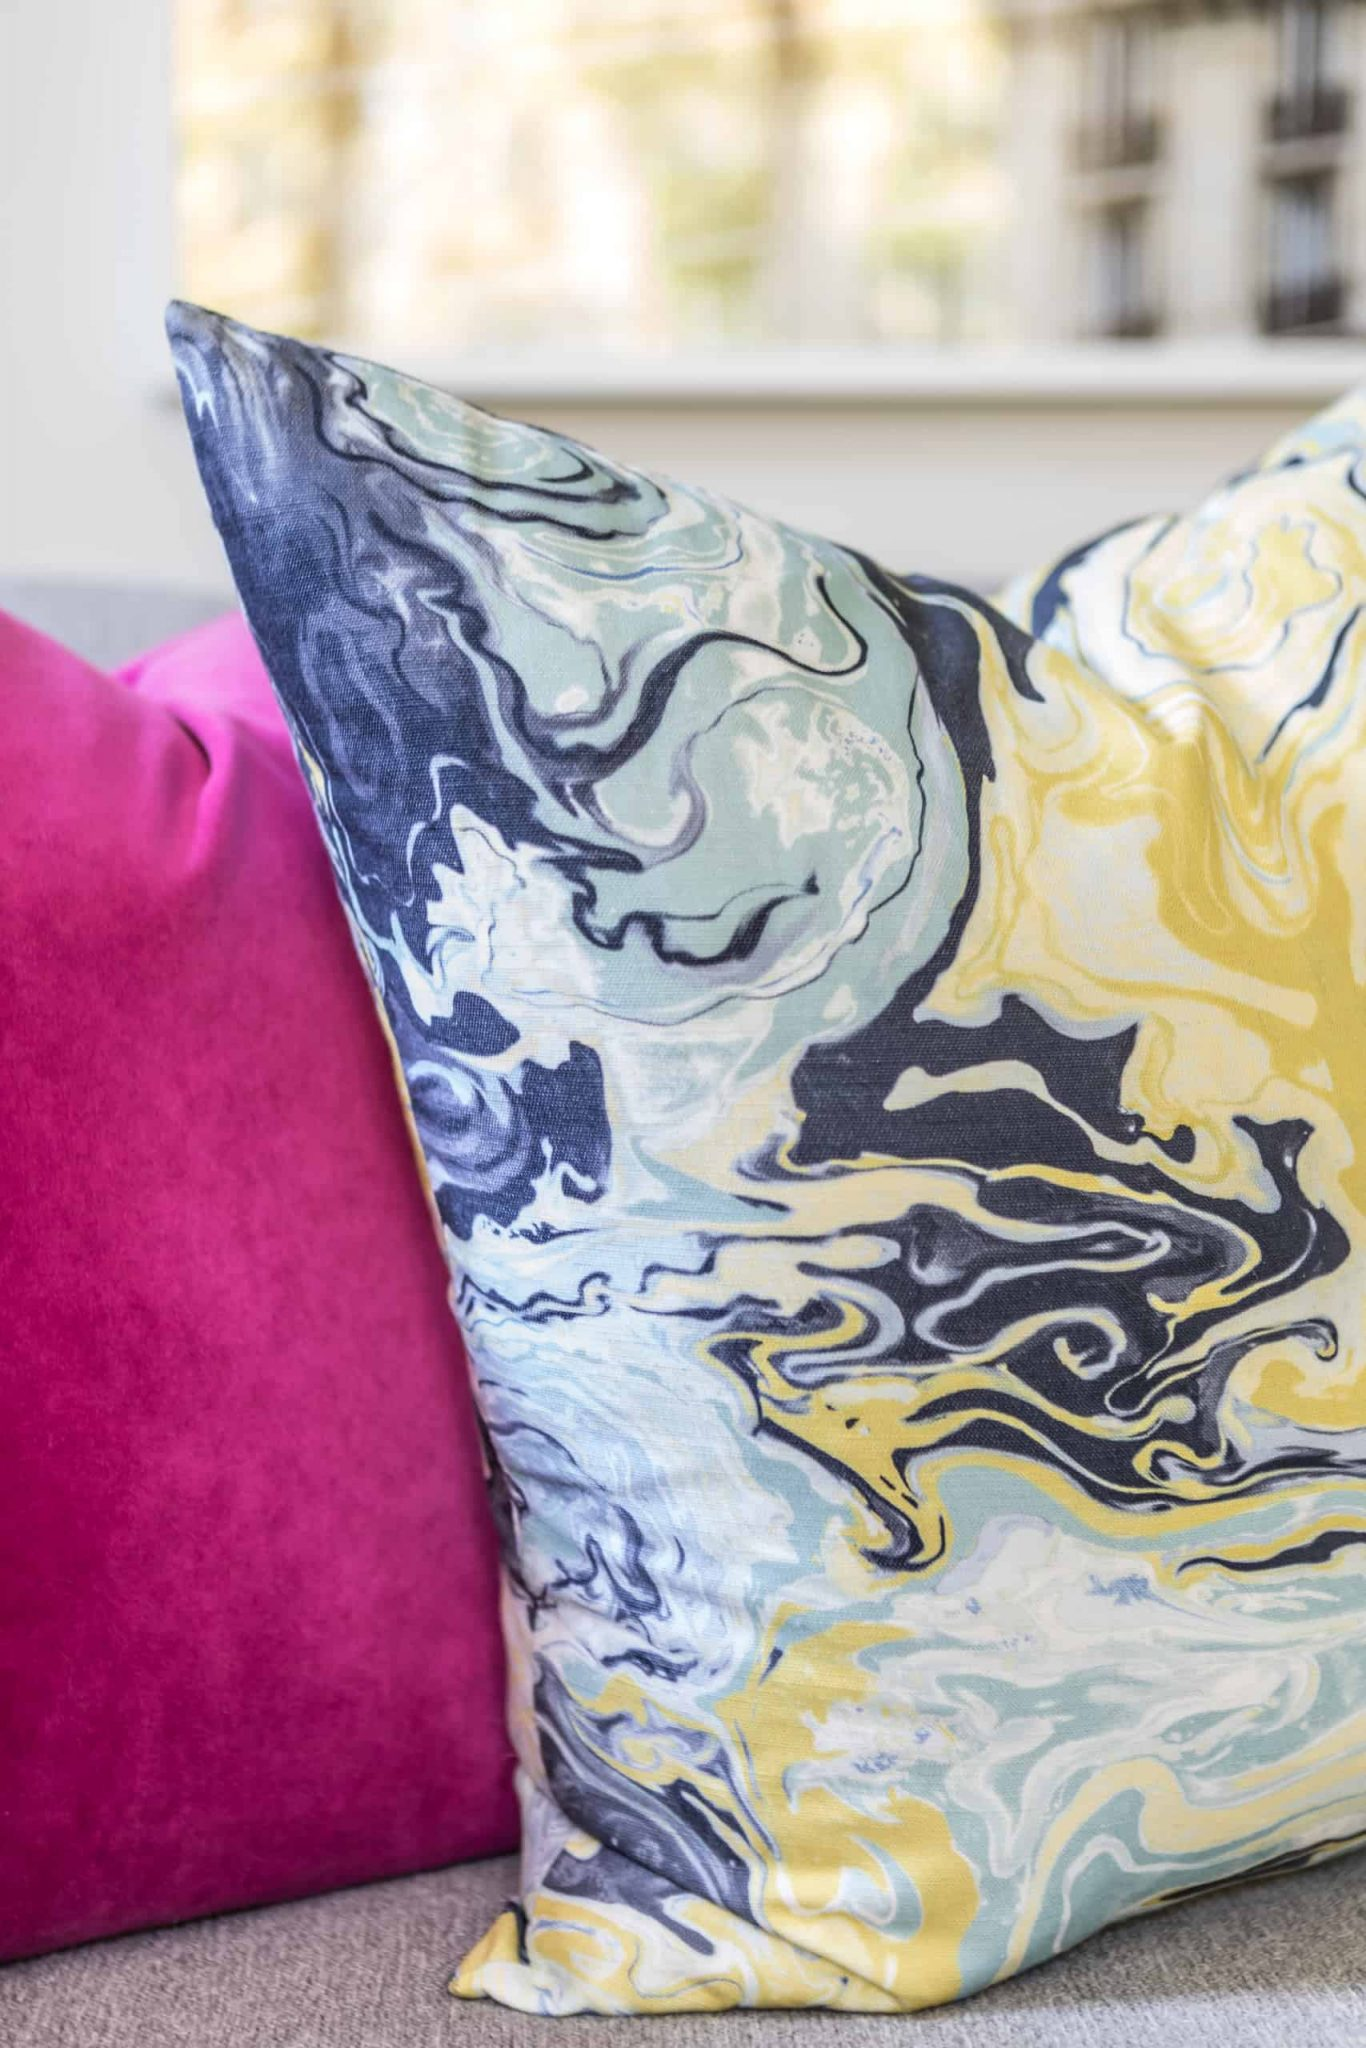 Colorful patterned pillow next to a pink pillow